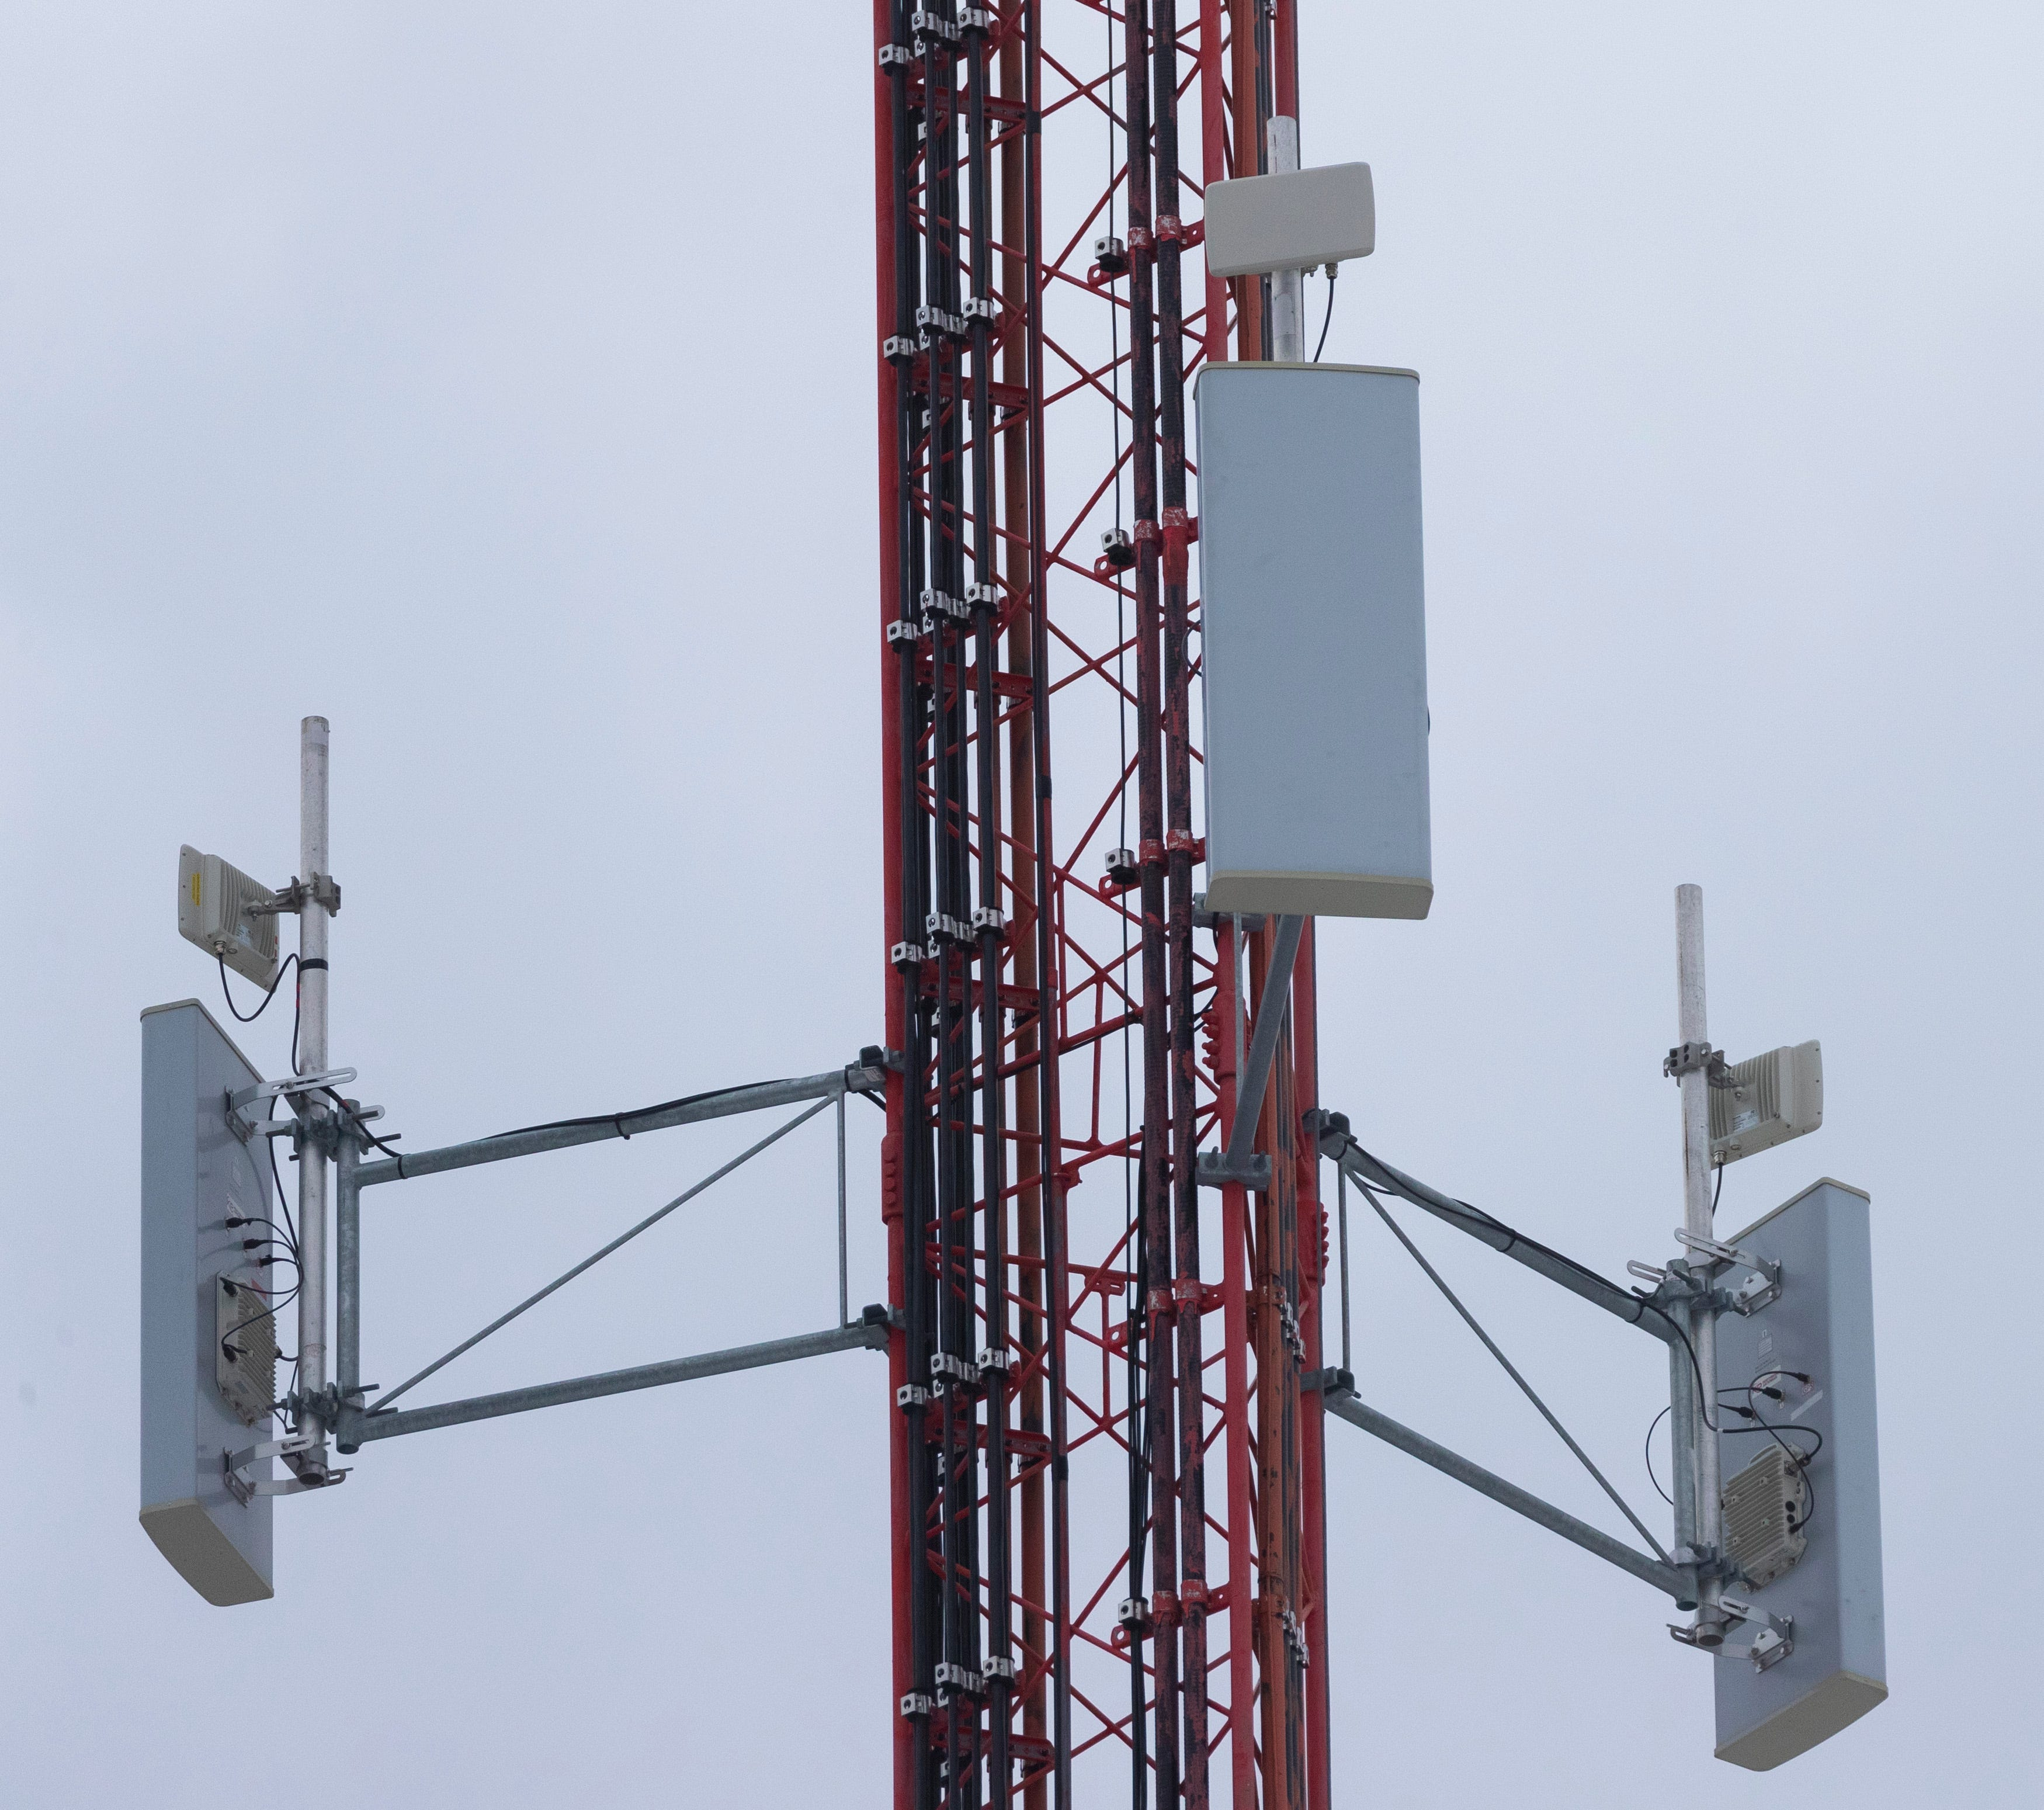 Transmission equipment on a communications tower used by Astrea is shown in Wausaukee.